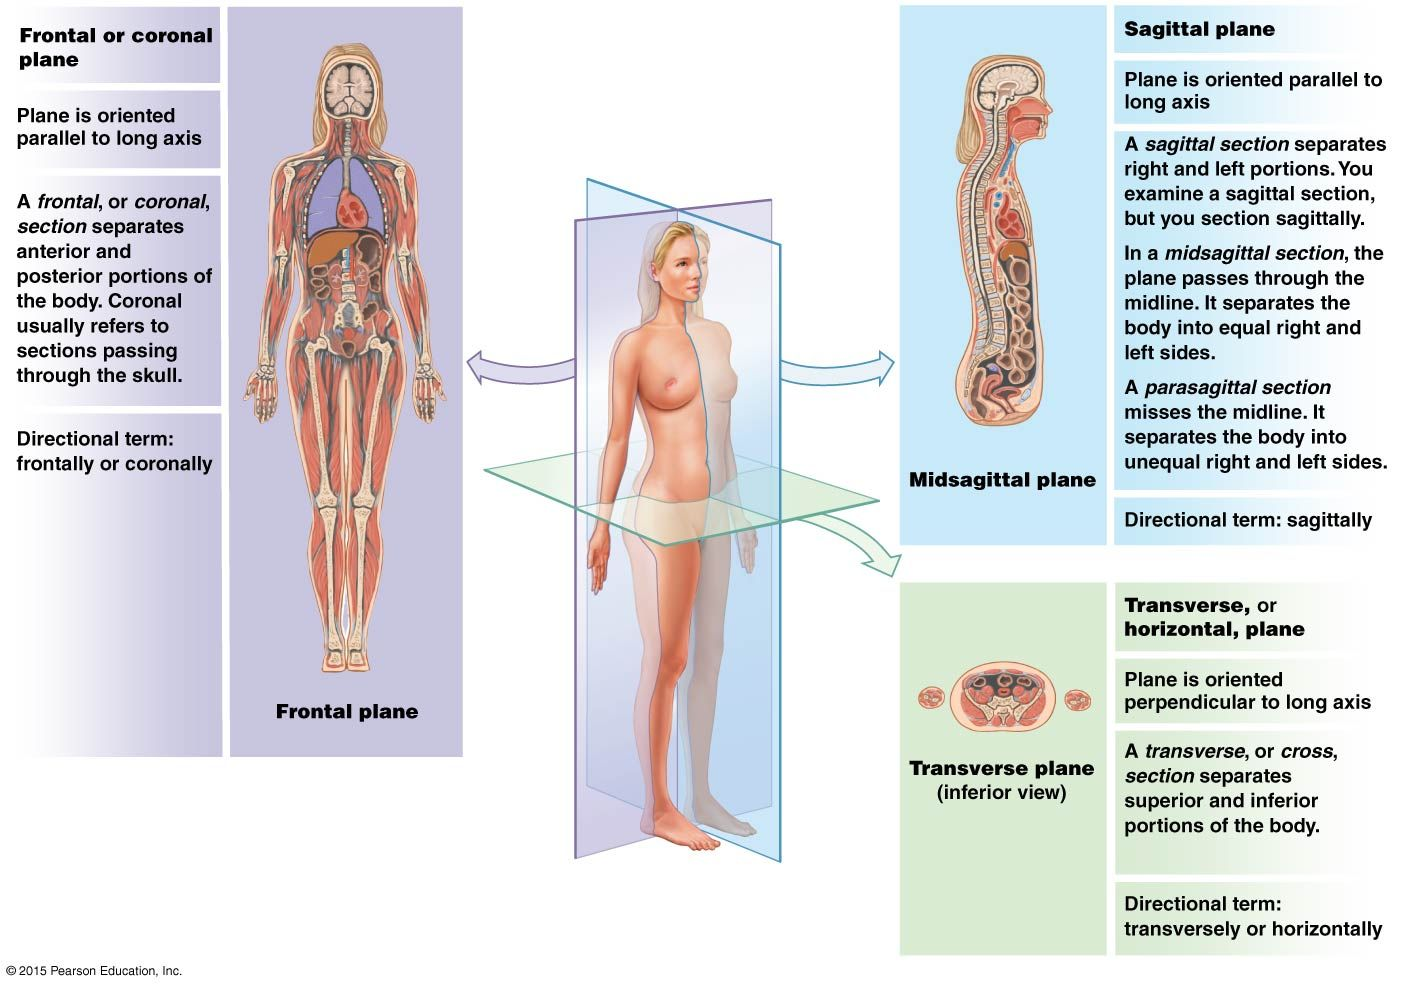 Illustration Showing Sectional Planes Of The Human Body